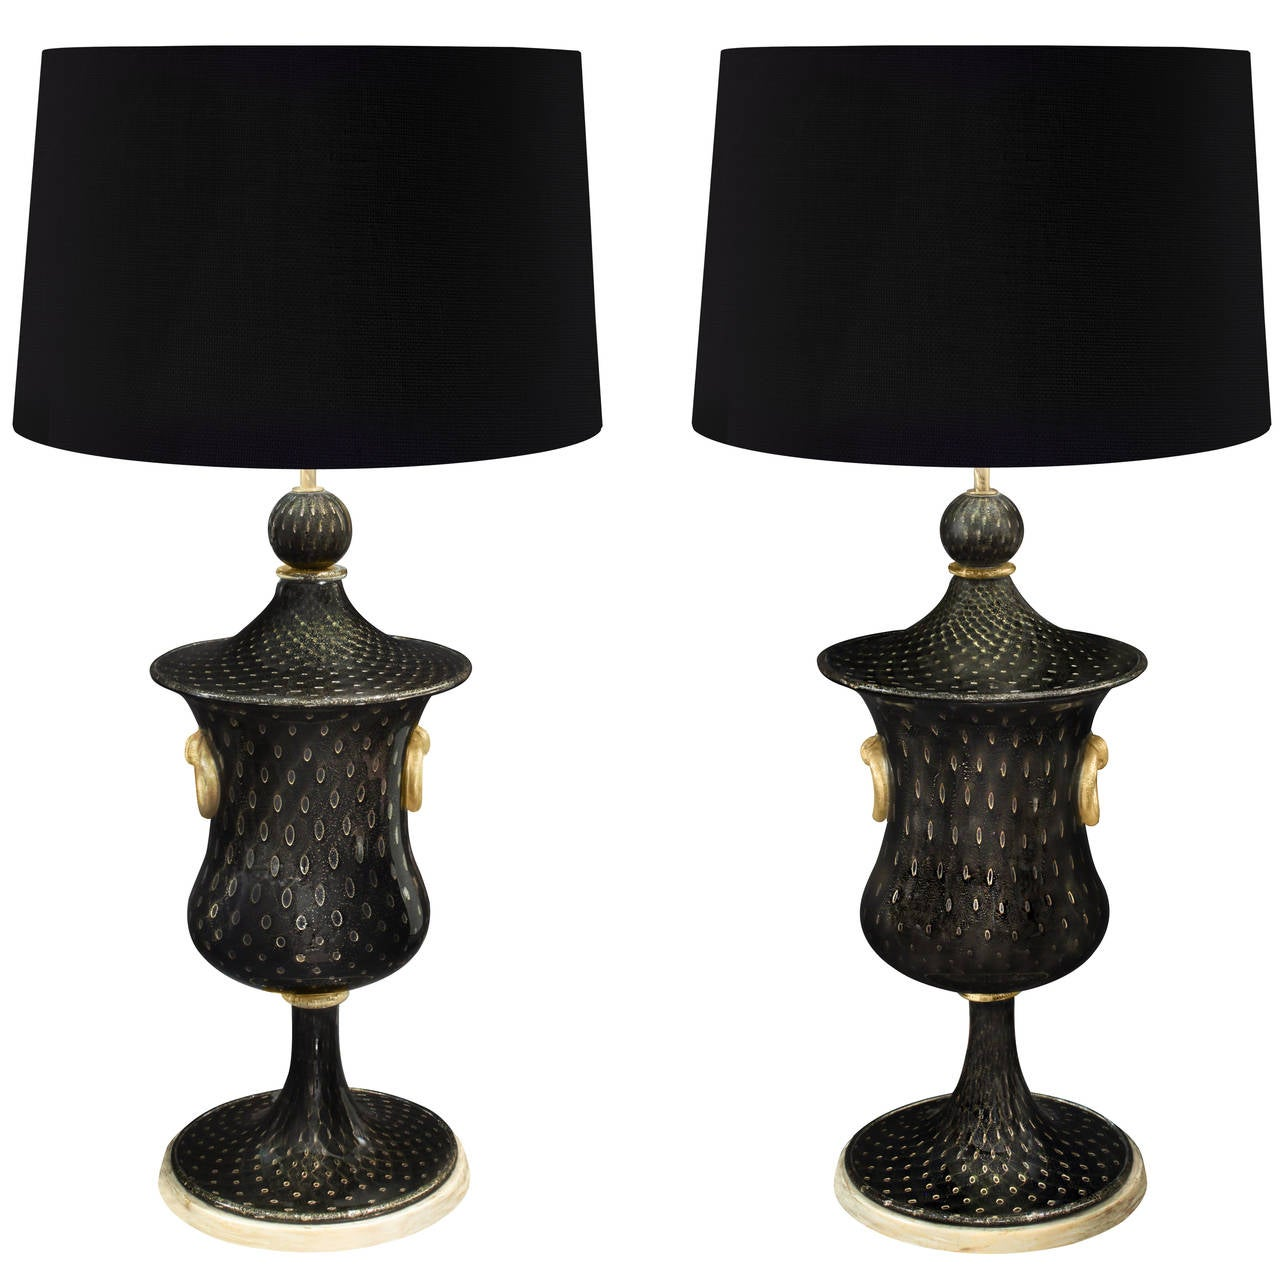 Barovier & Toso Pair of Monumental Handblown Glass Table Lamps, 1940s 1